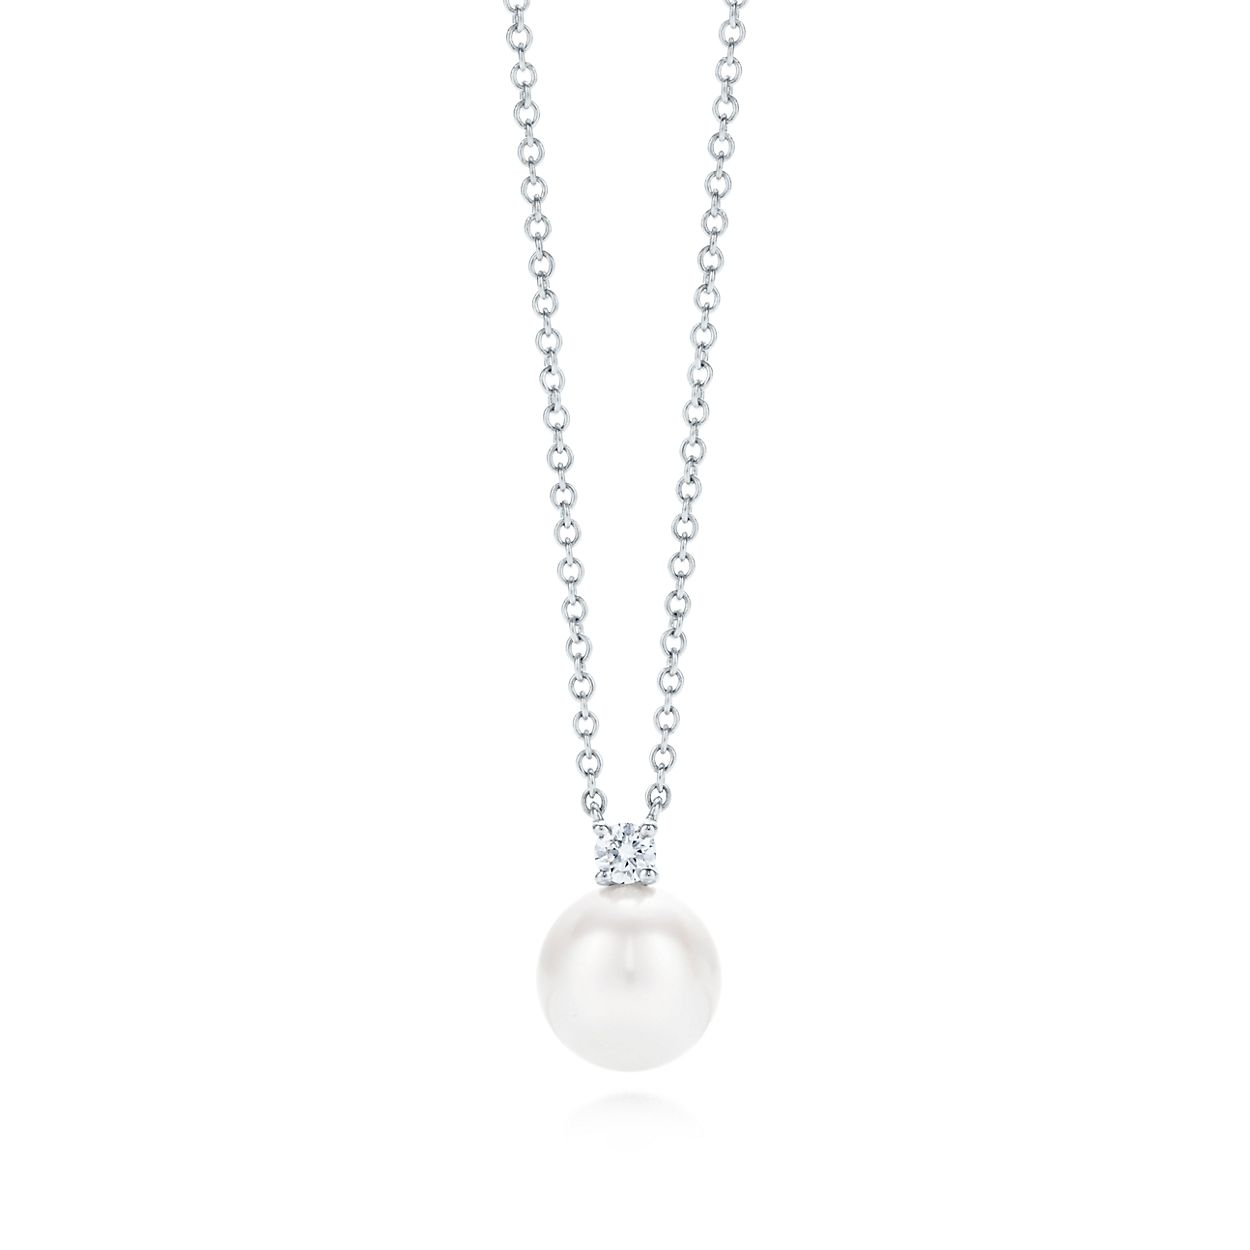 Tiffany signature pendant in 18k white gold with an akoya pearl tiffany signaturepearl pendant mozeypictures Choice Image